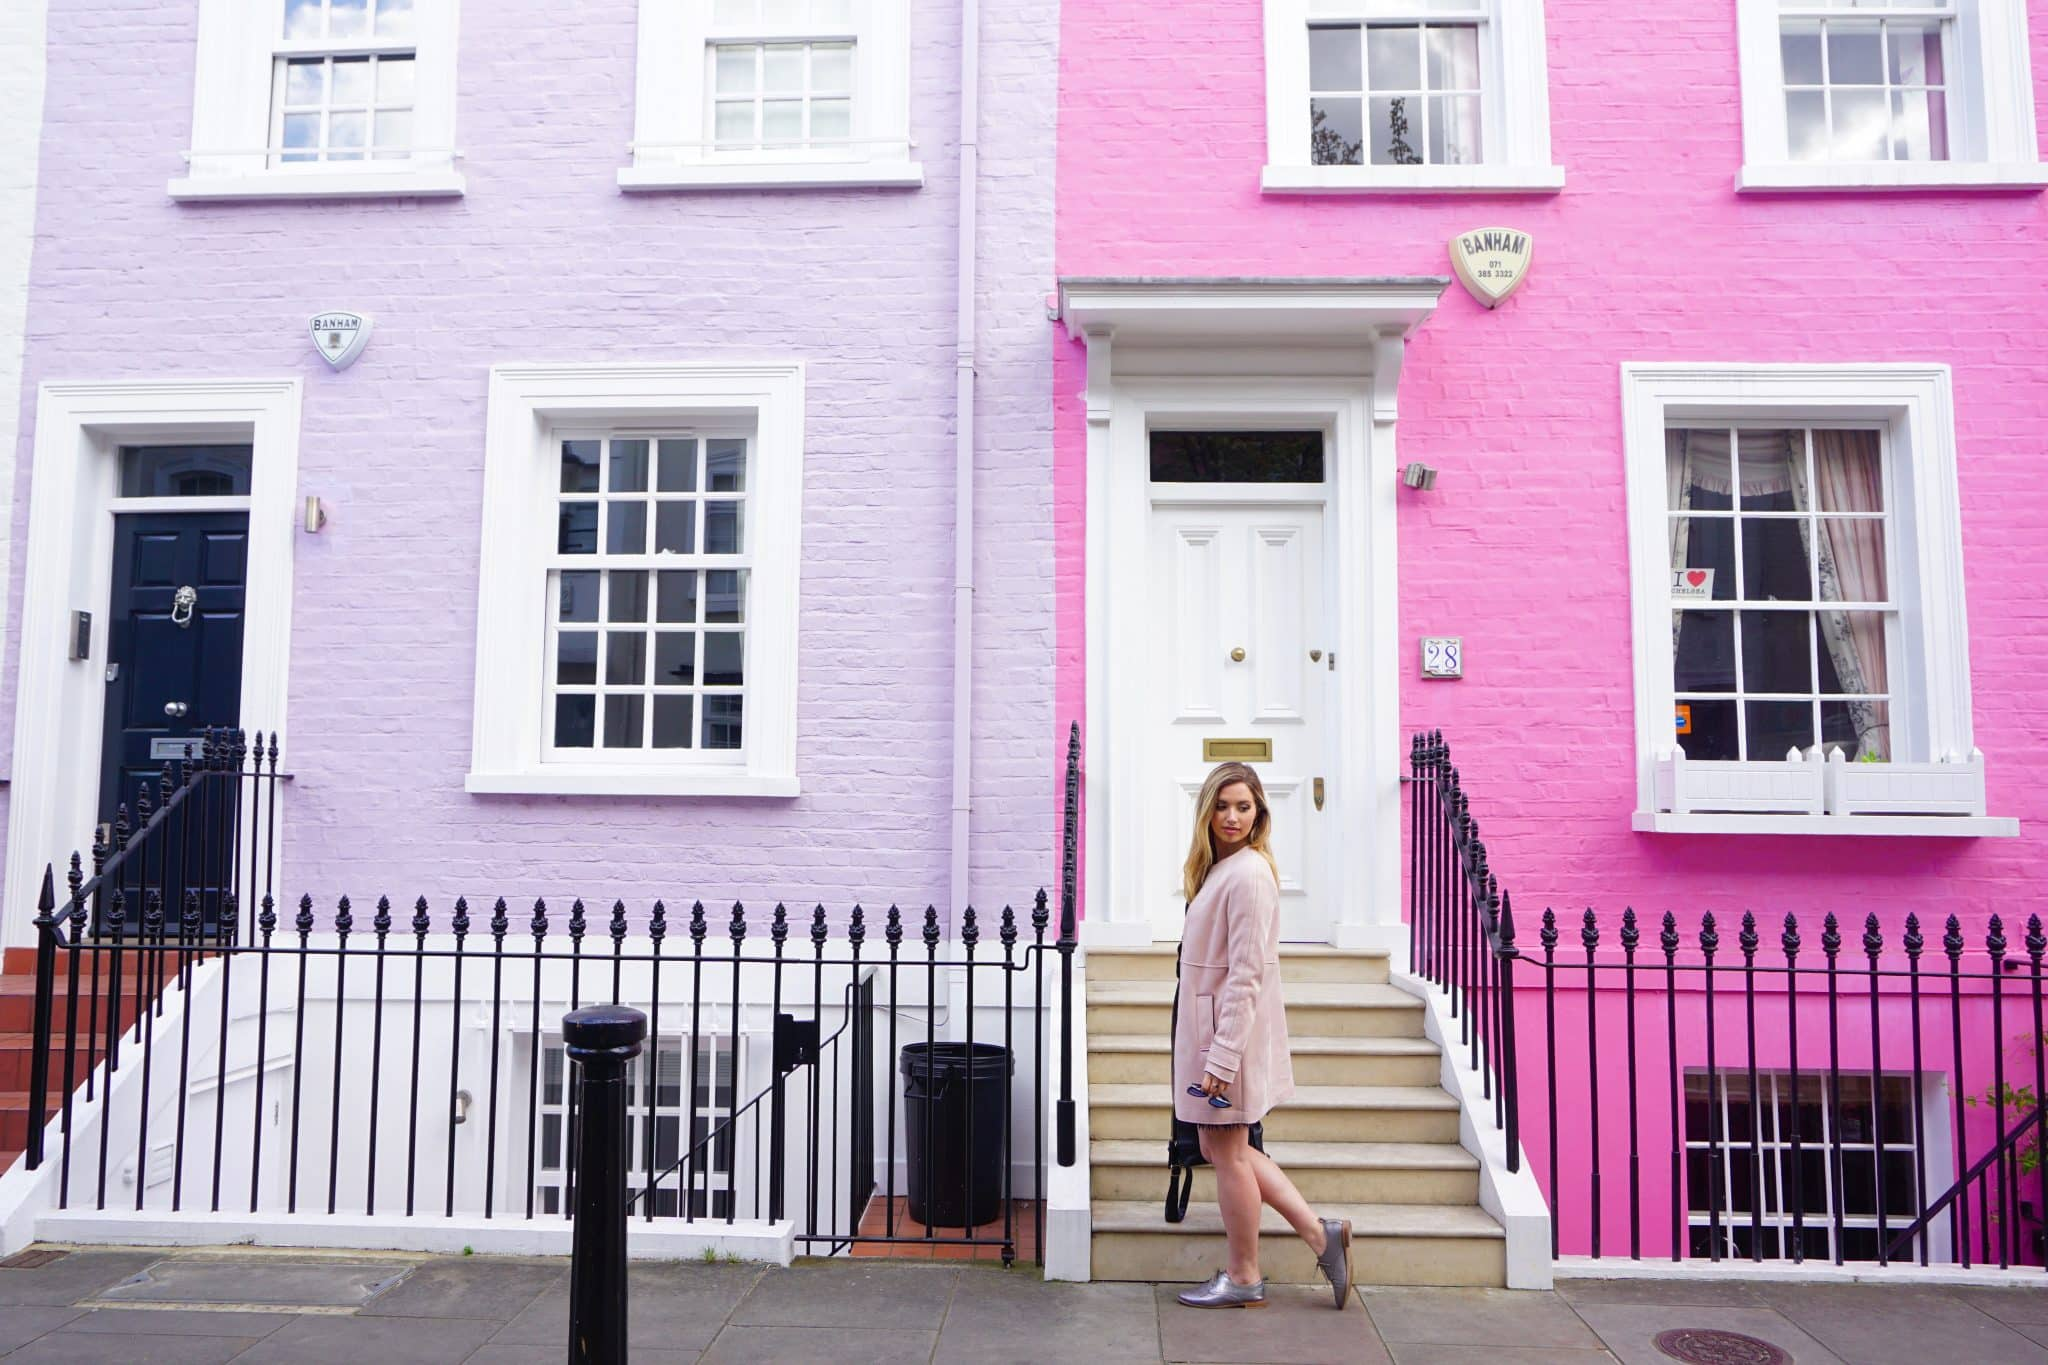 Chelsea and Notting Hill: A Colorful London Walking Guide